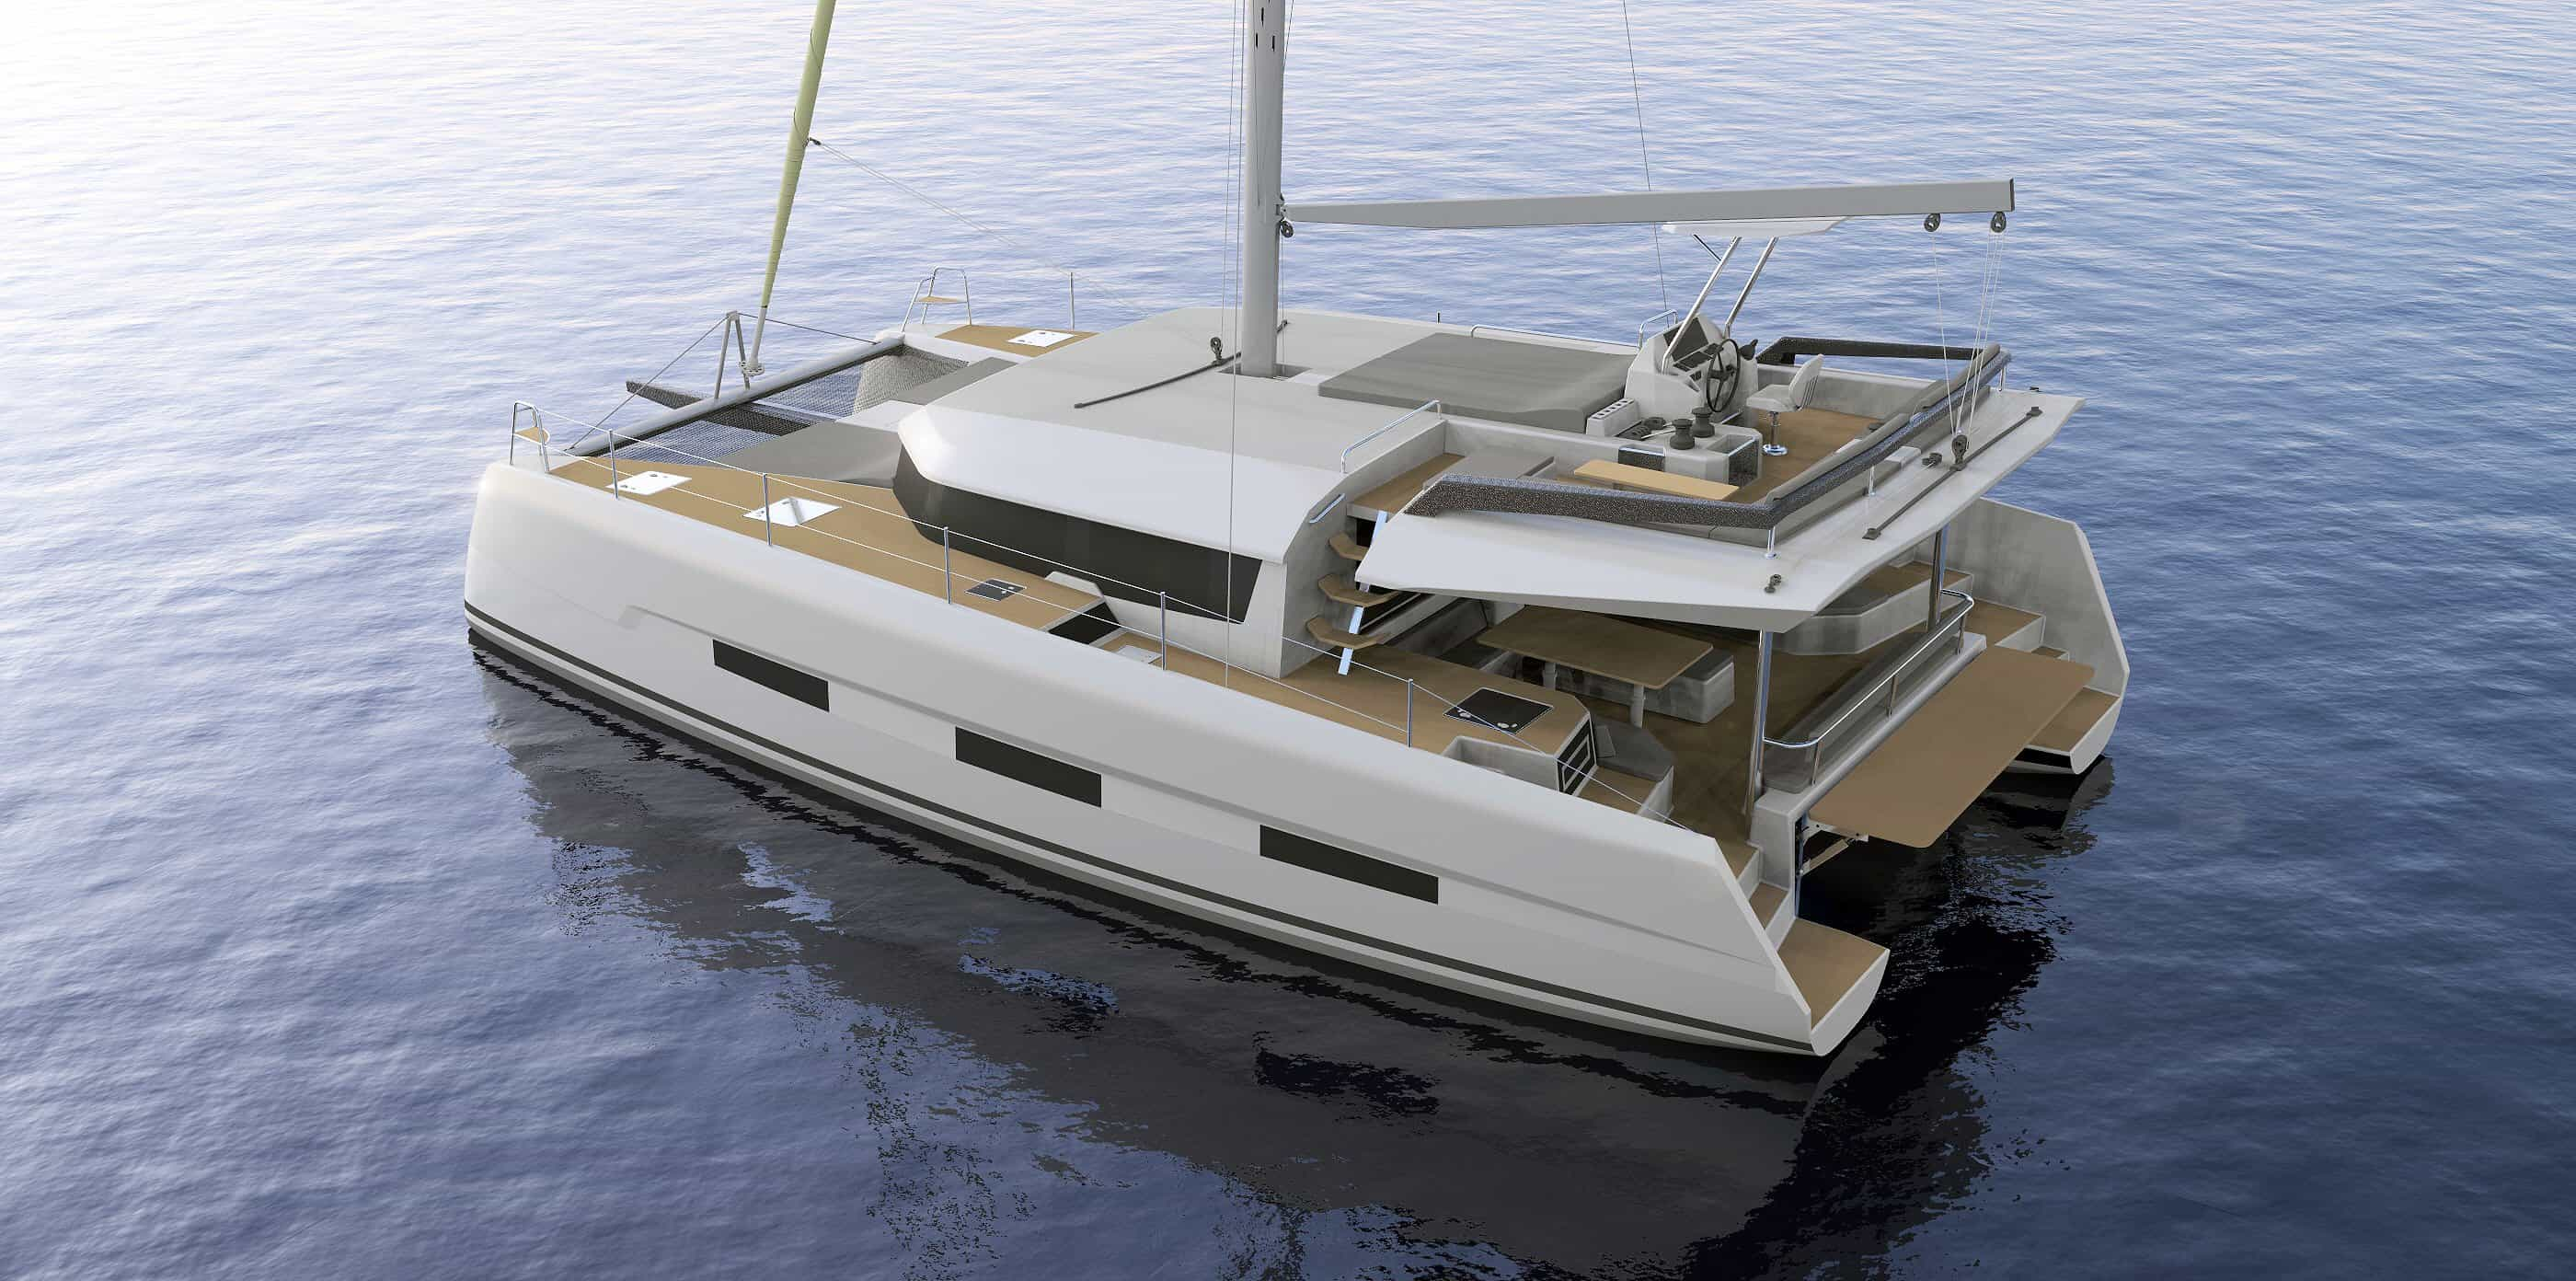 3D animated Dufour Catamaran 48 in water from behind